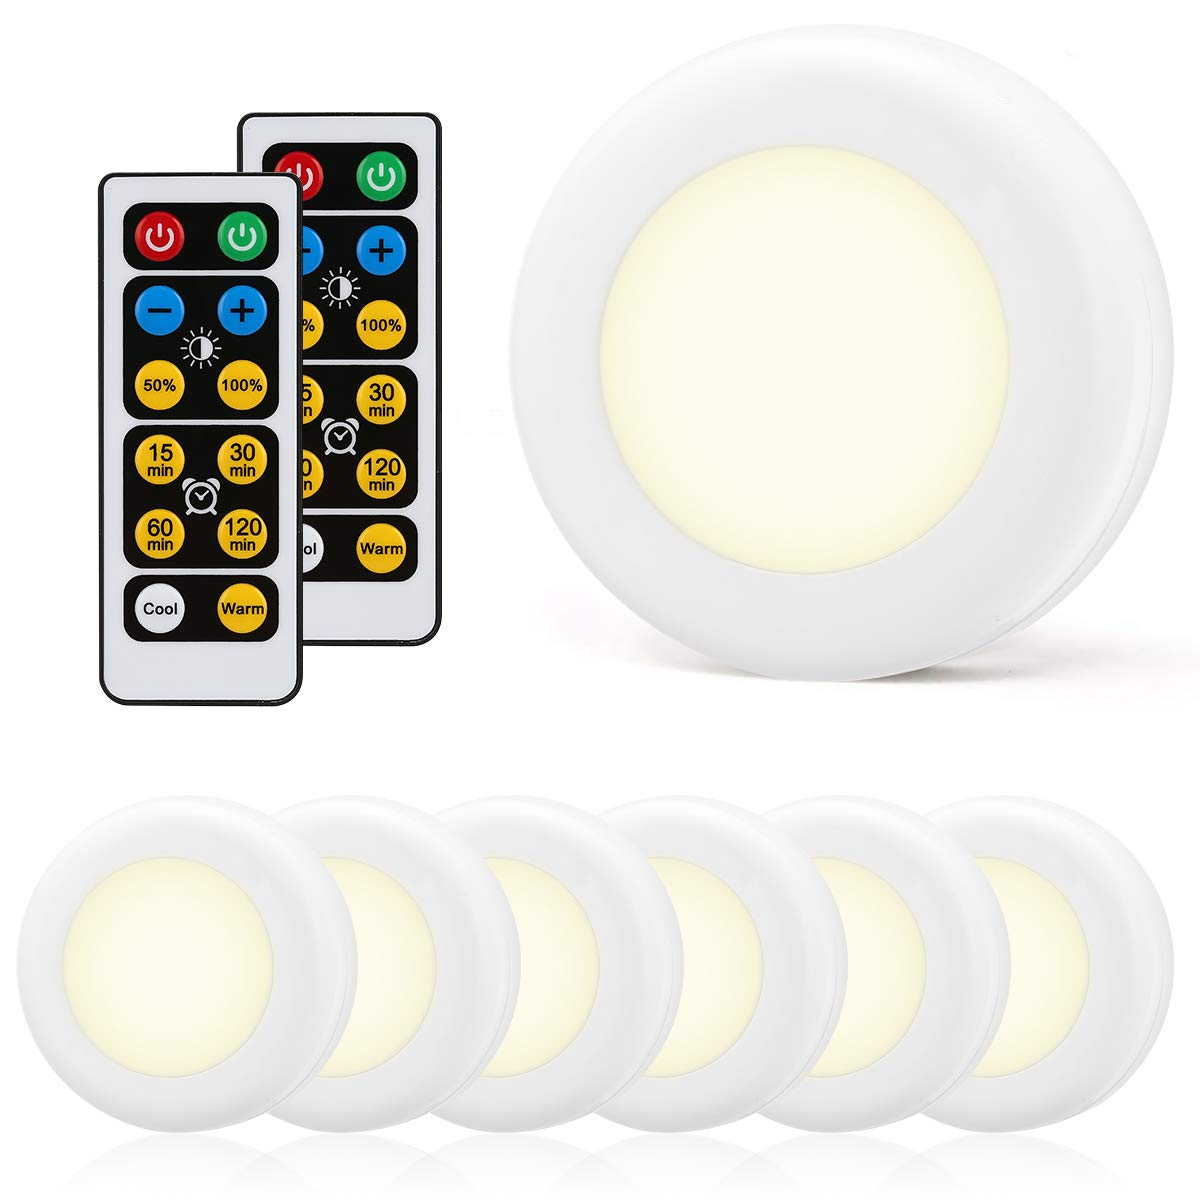 LOHAS LED Under Cabinet Kitchen Light with Remote Control, Color Convertible Puck Light